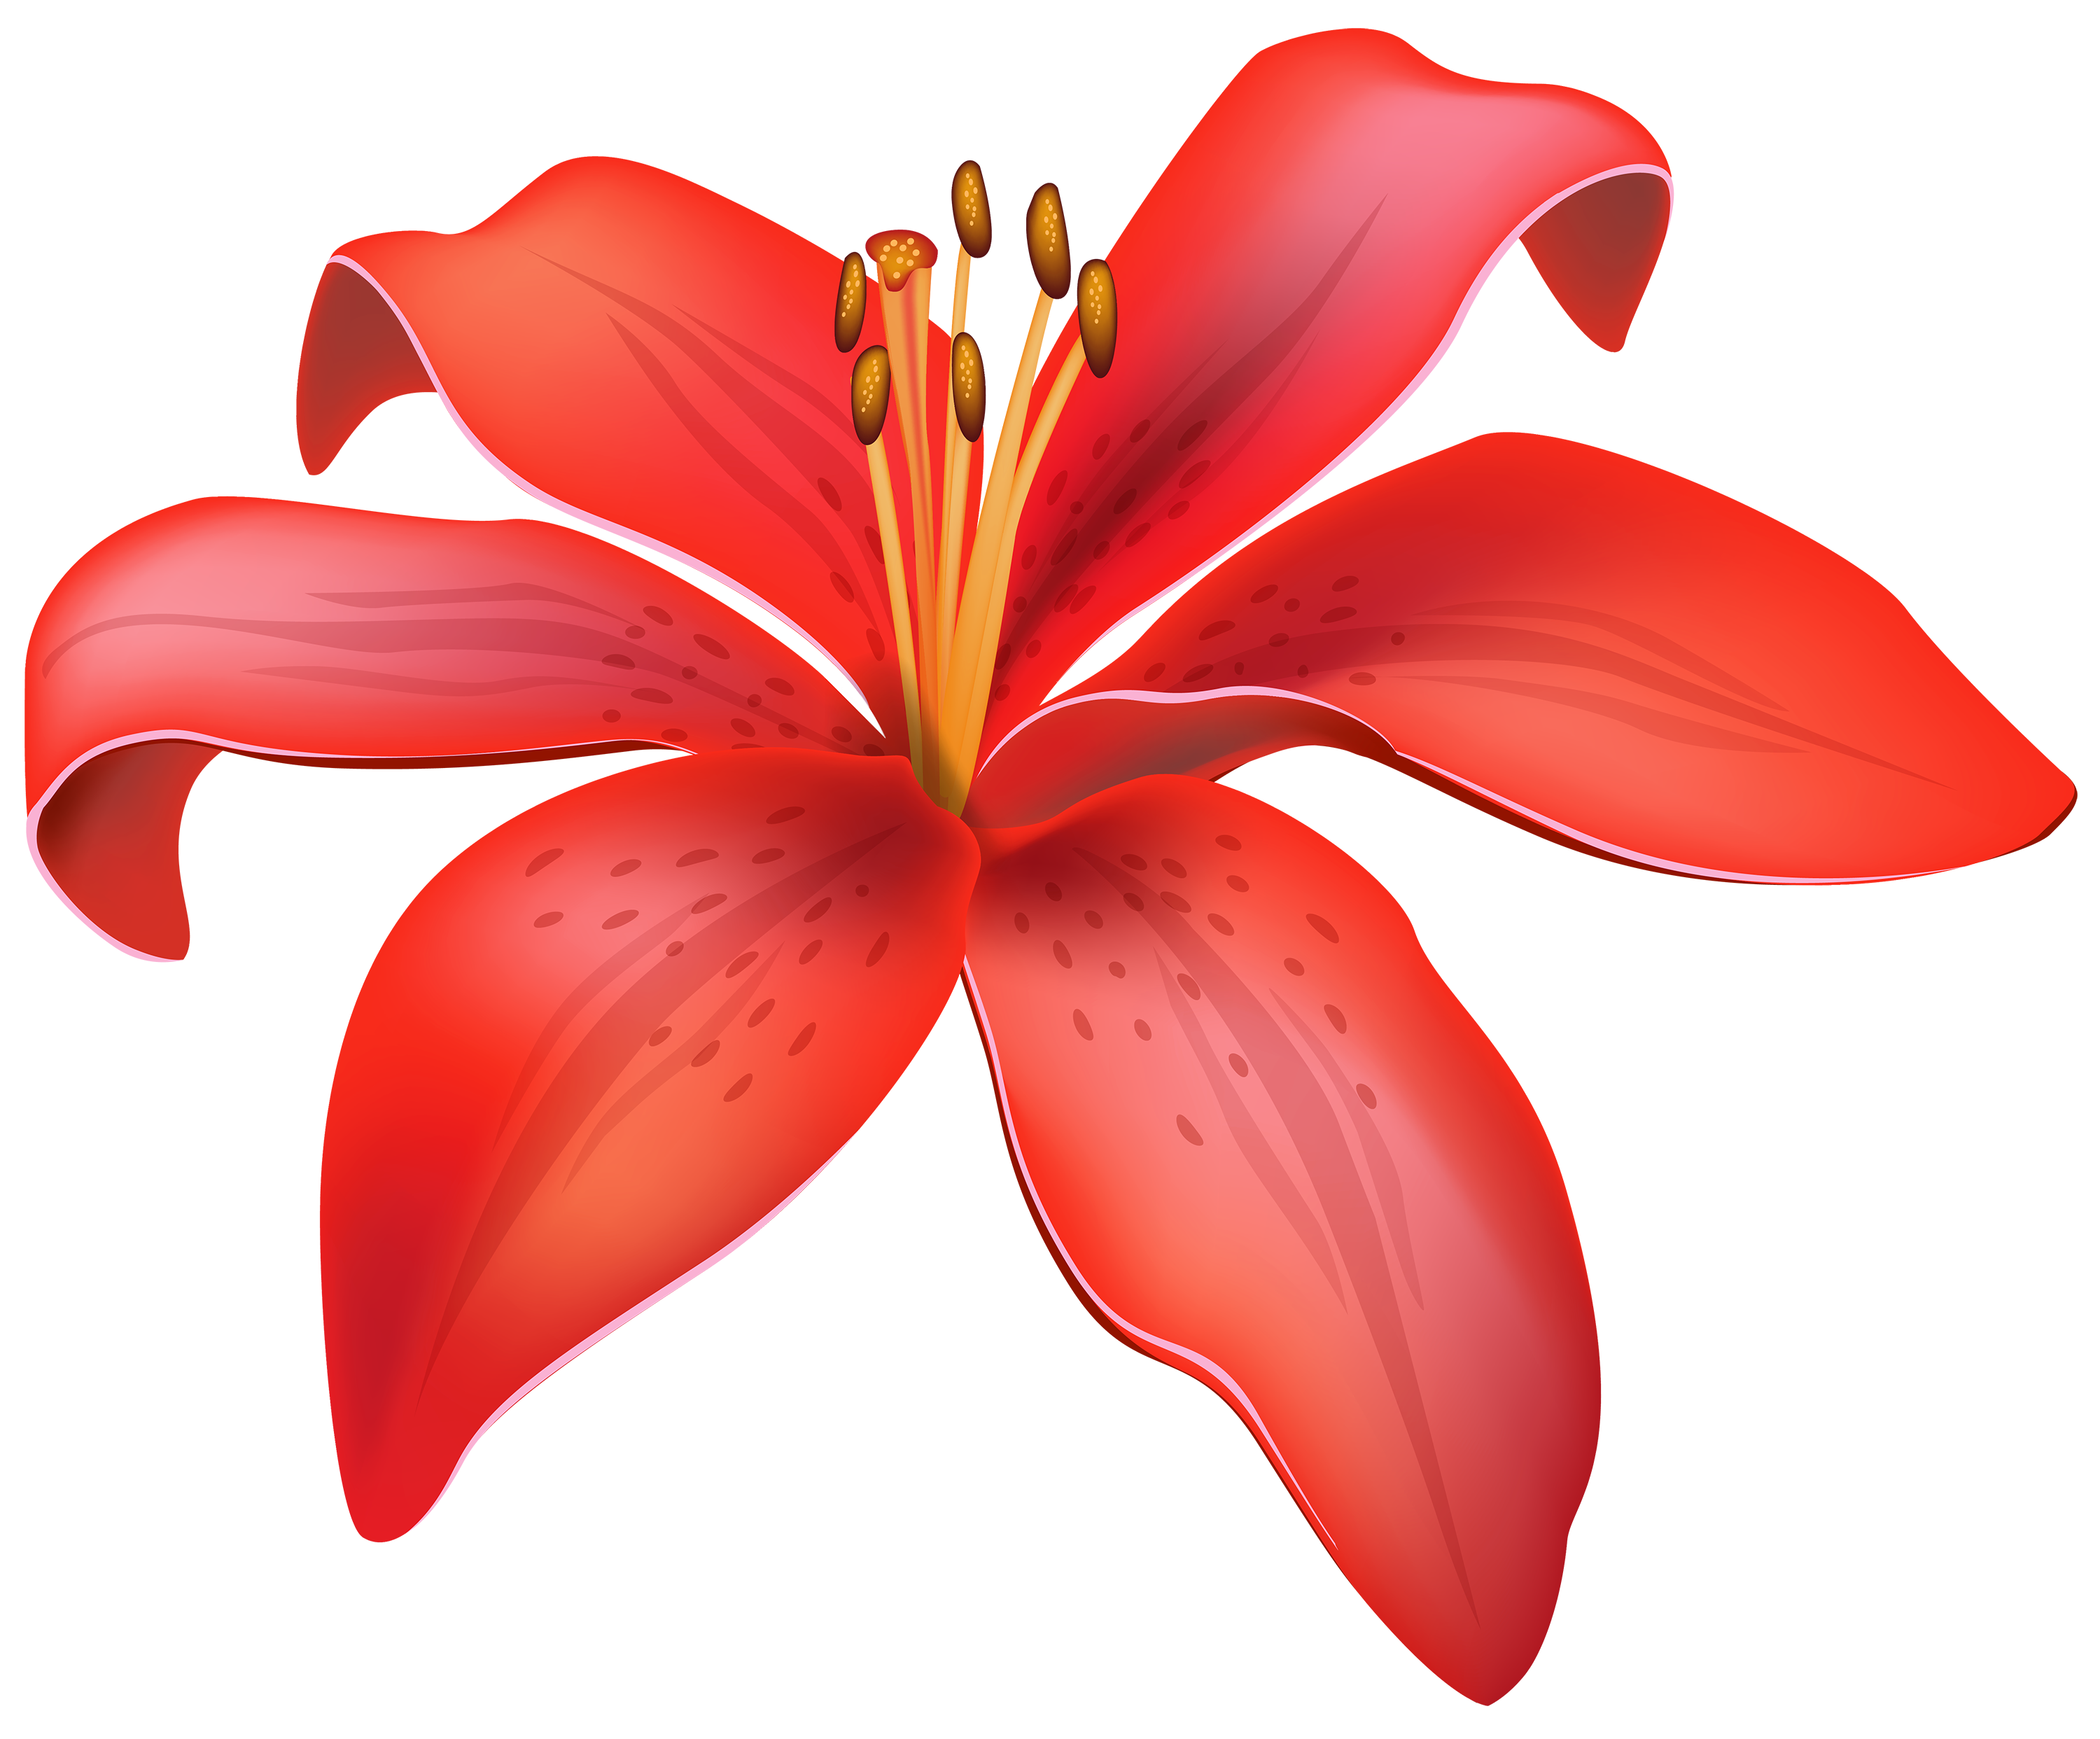 clip transparent Lily clipart. Red flower png best.